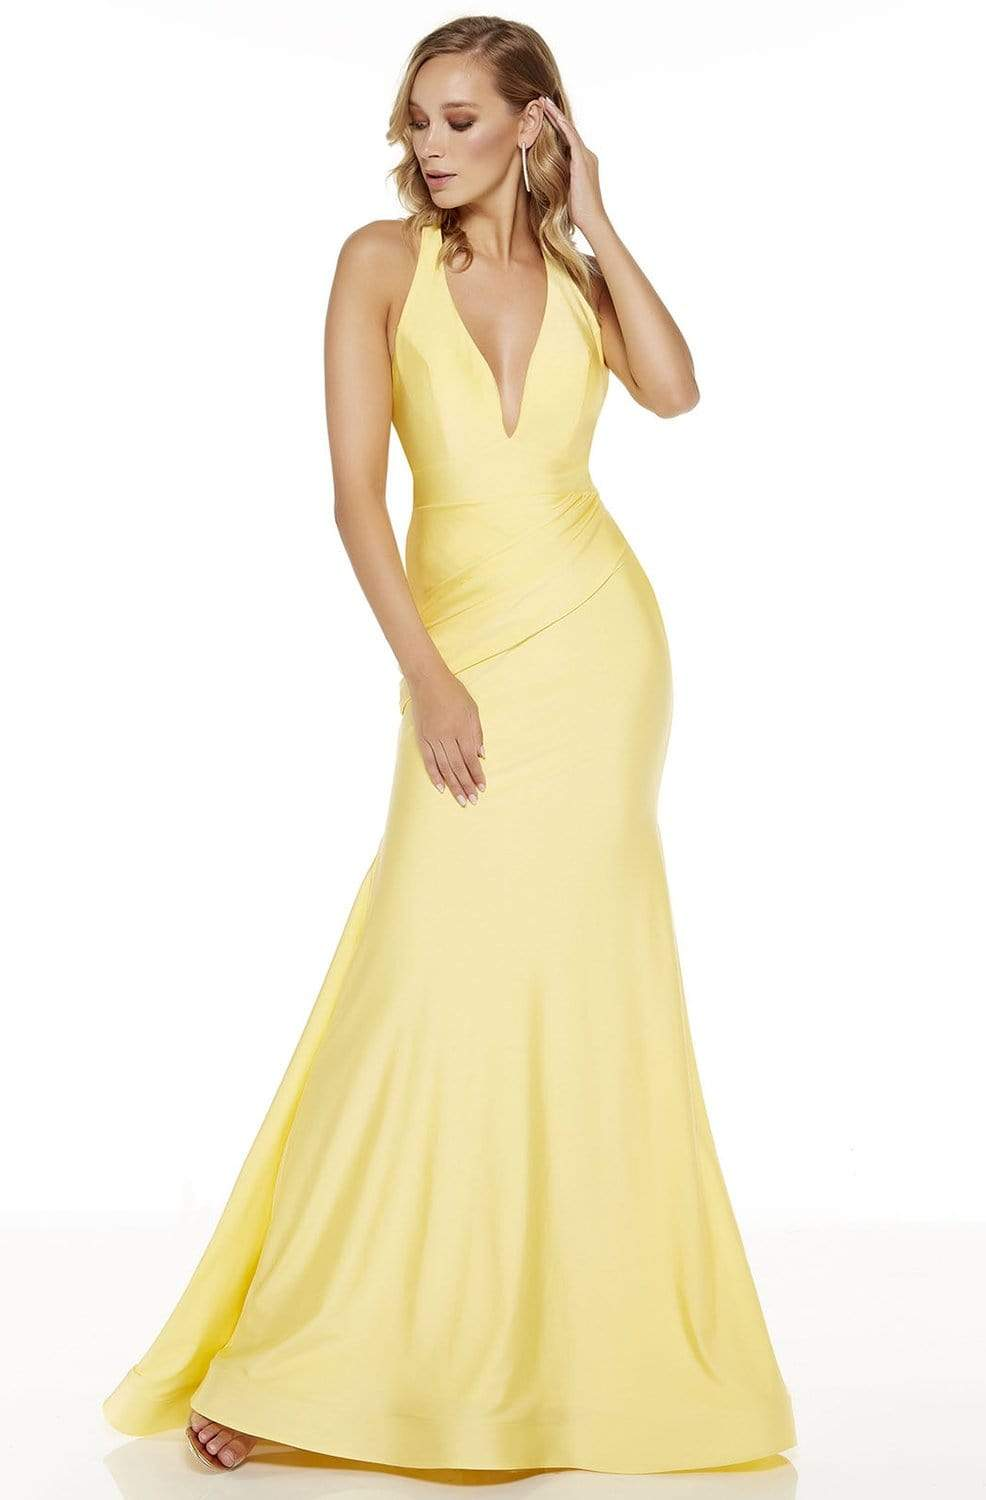 Alyce Paris - 60766 Plain Strappy Back Trumpet Dress Evening Dresses 0 / Yellow